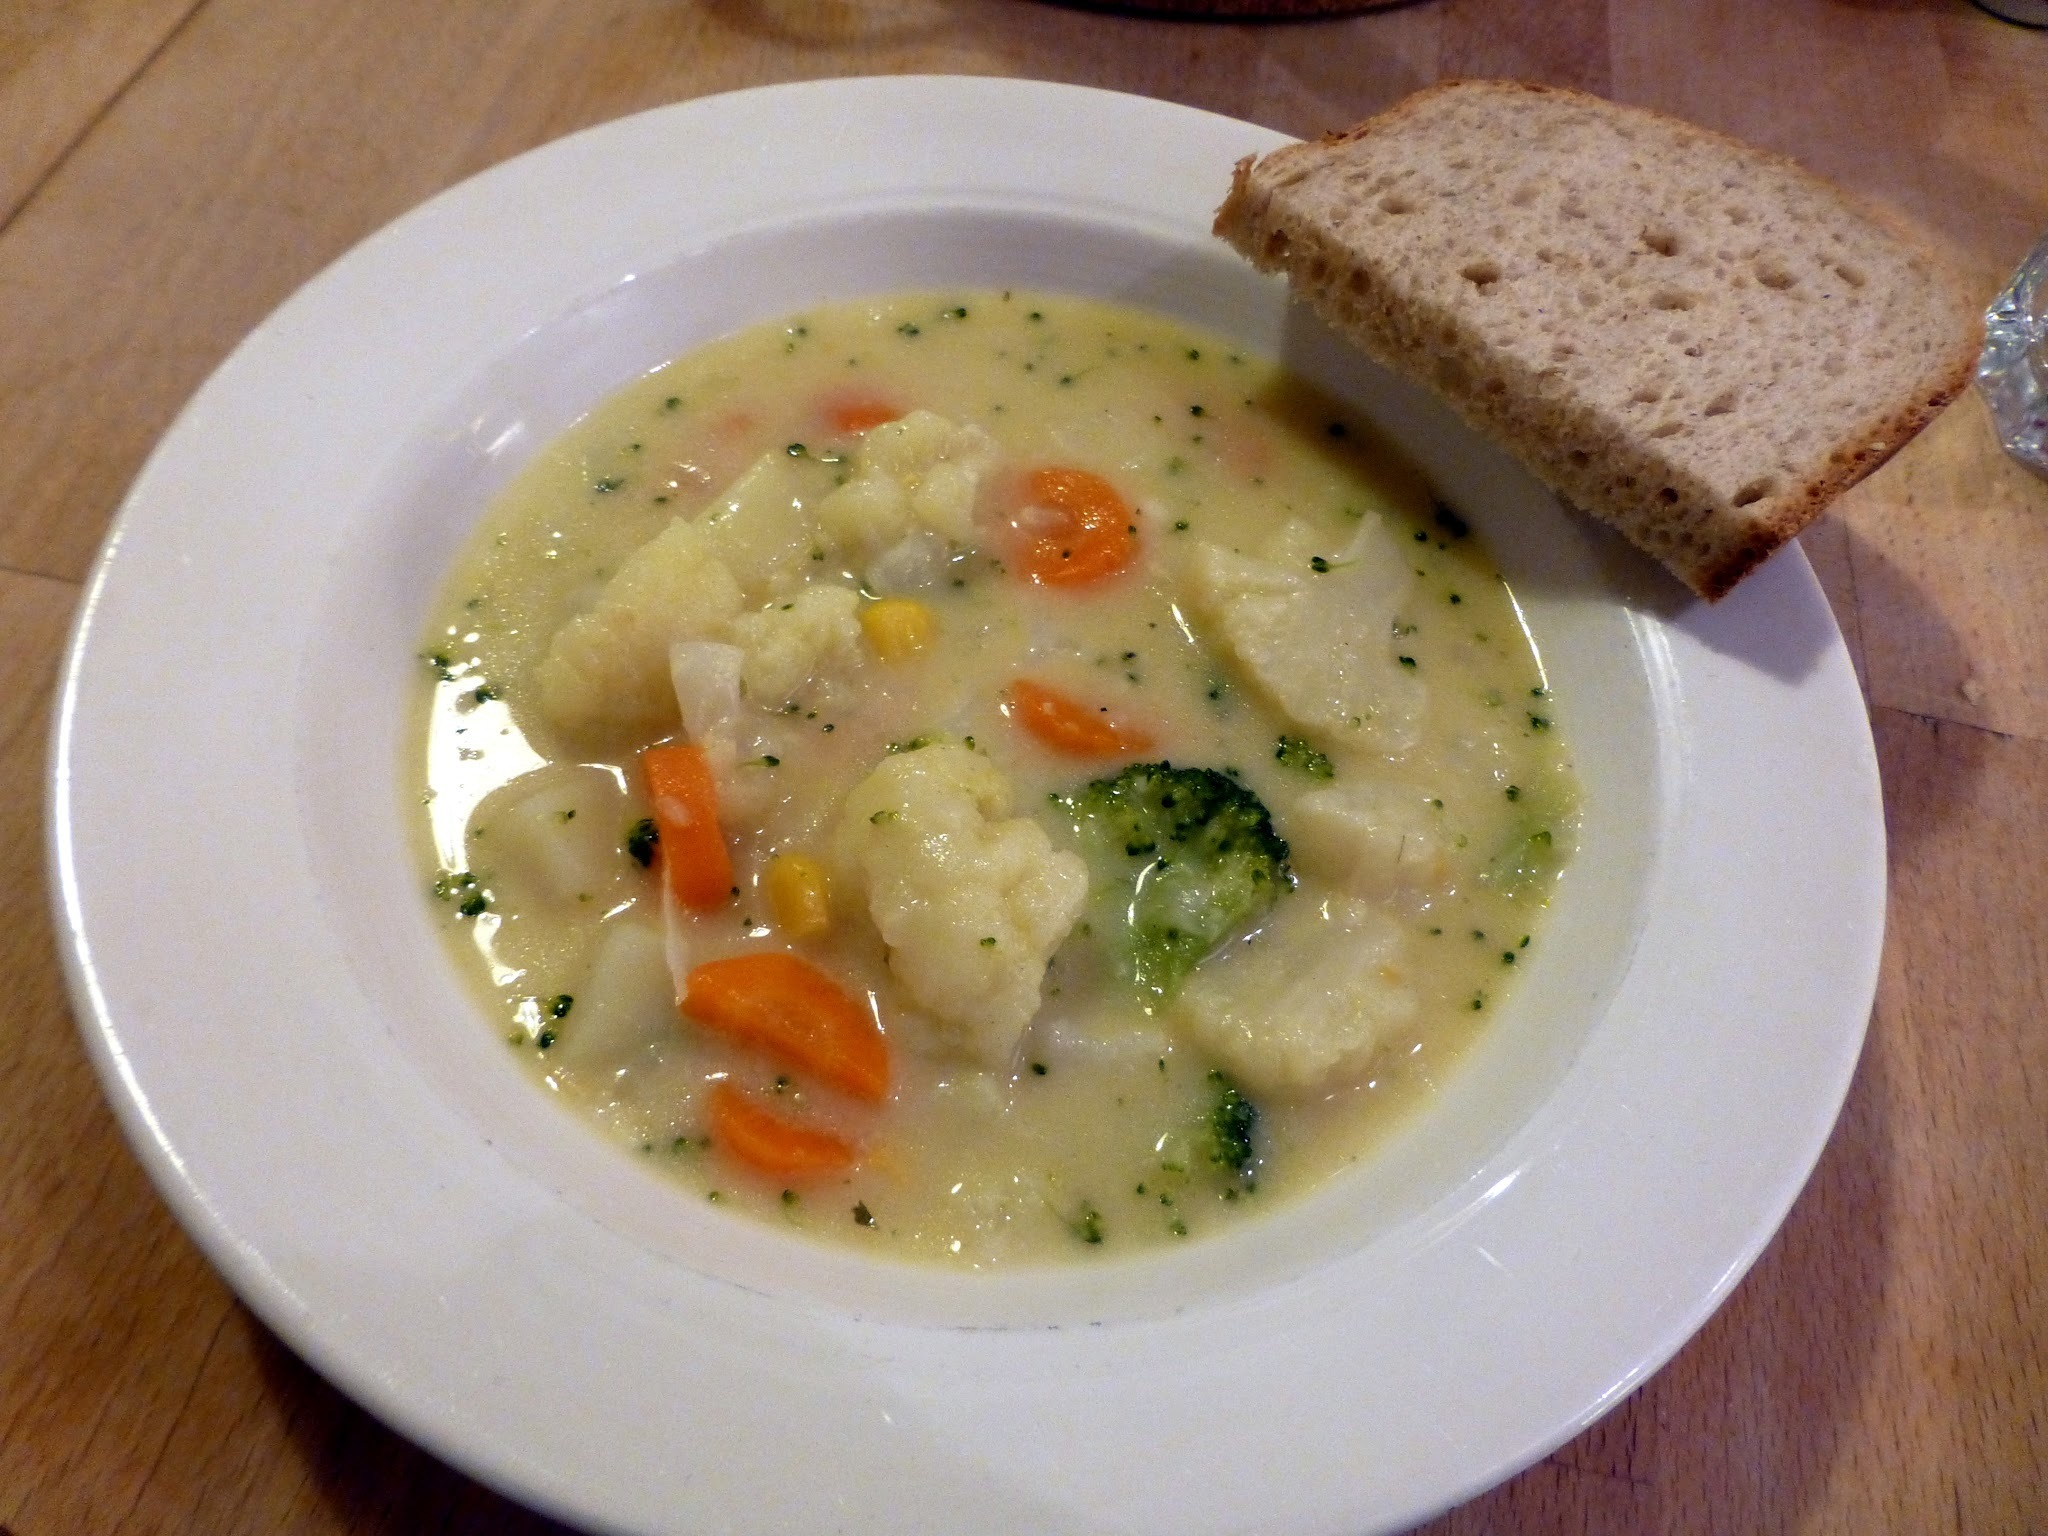 Cheesy vegetable chowder.